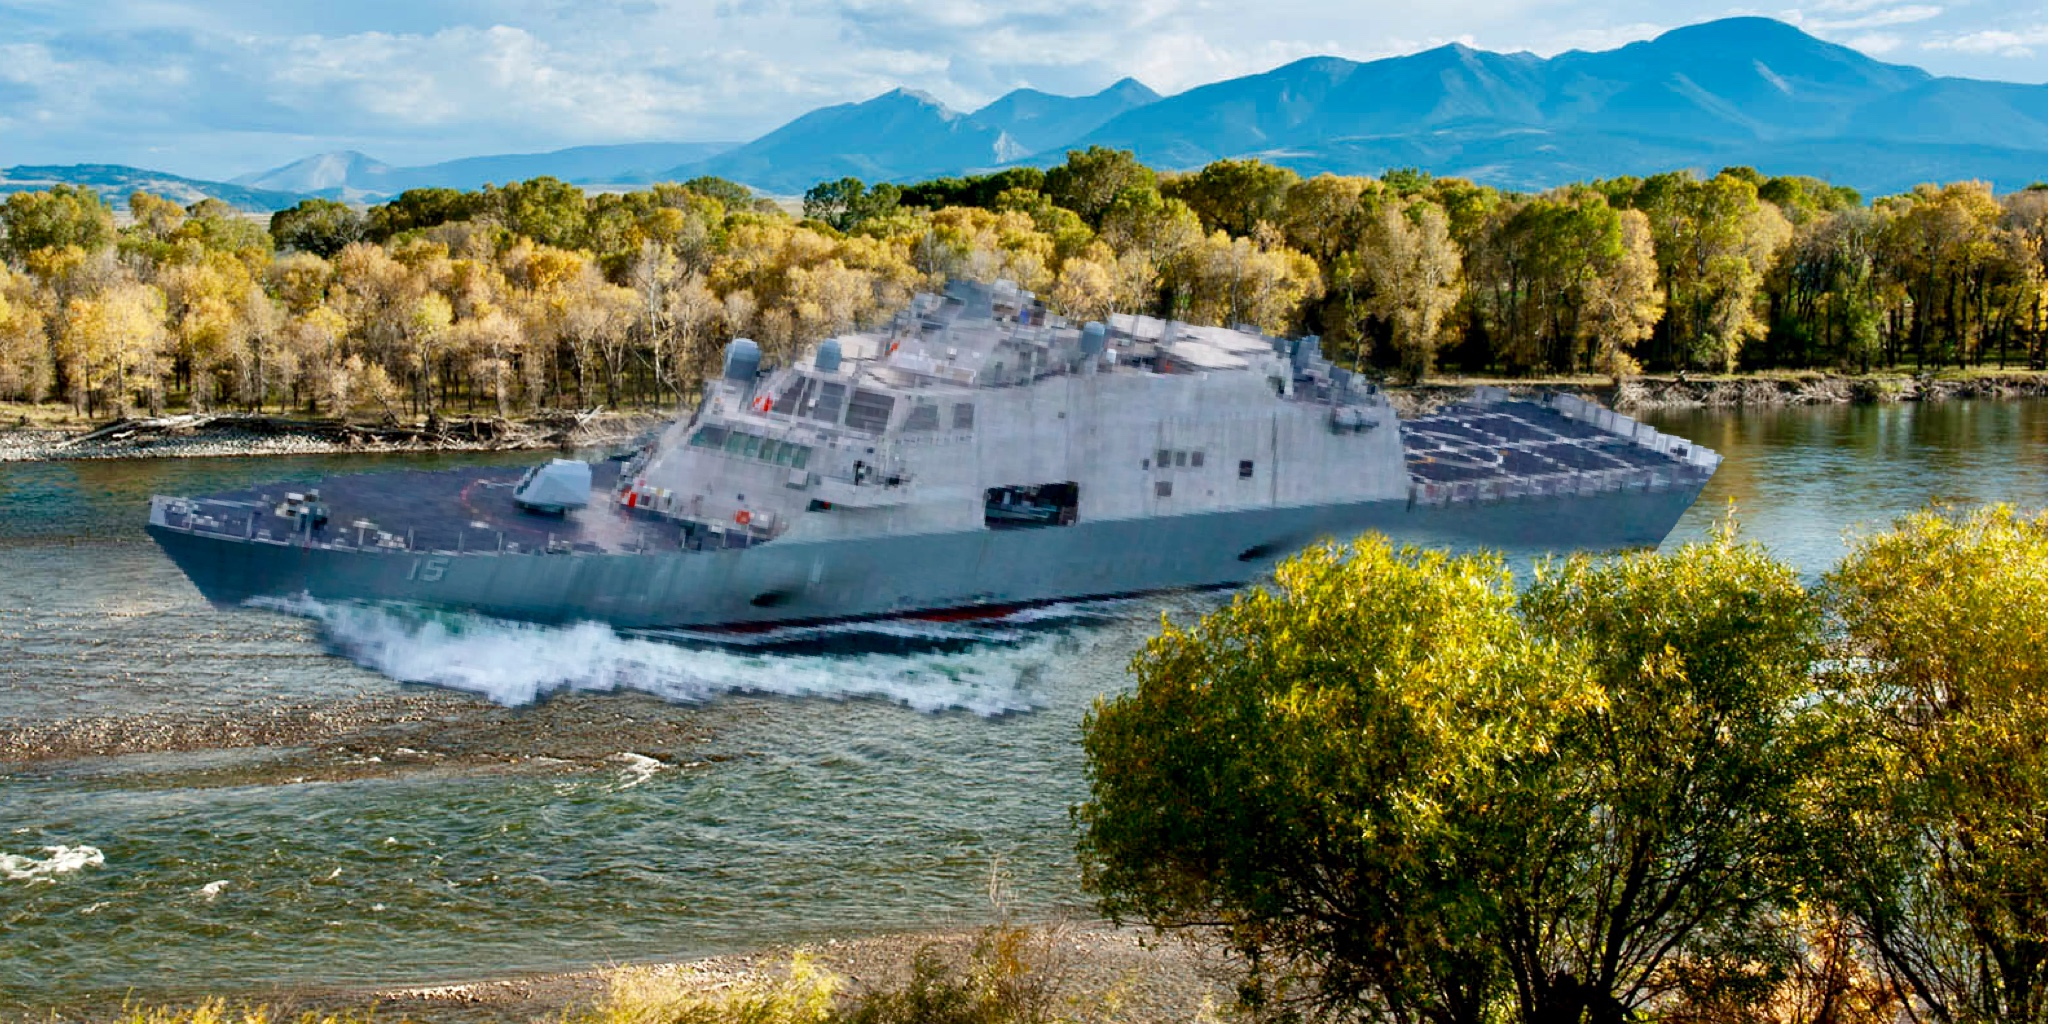 The uss billings making its maiden voyage up the yellowstone river